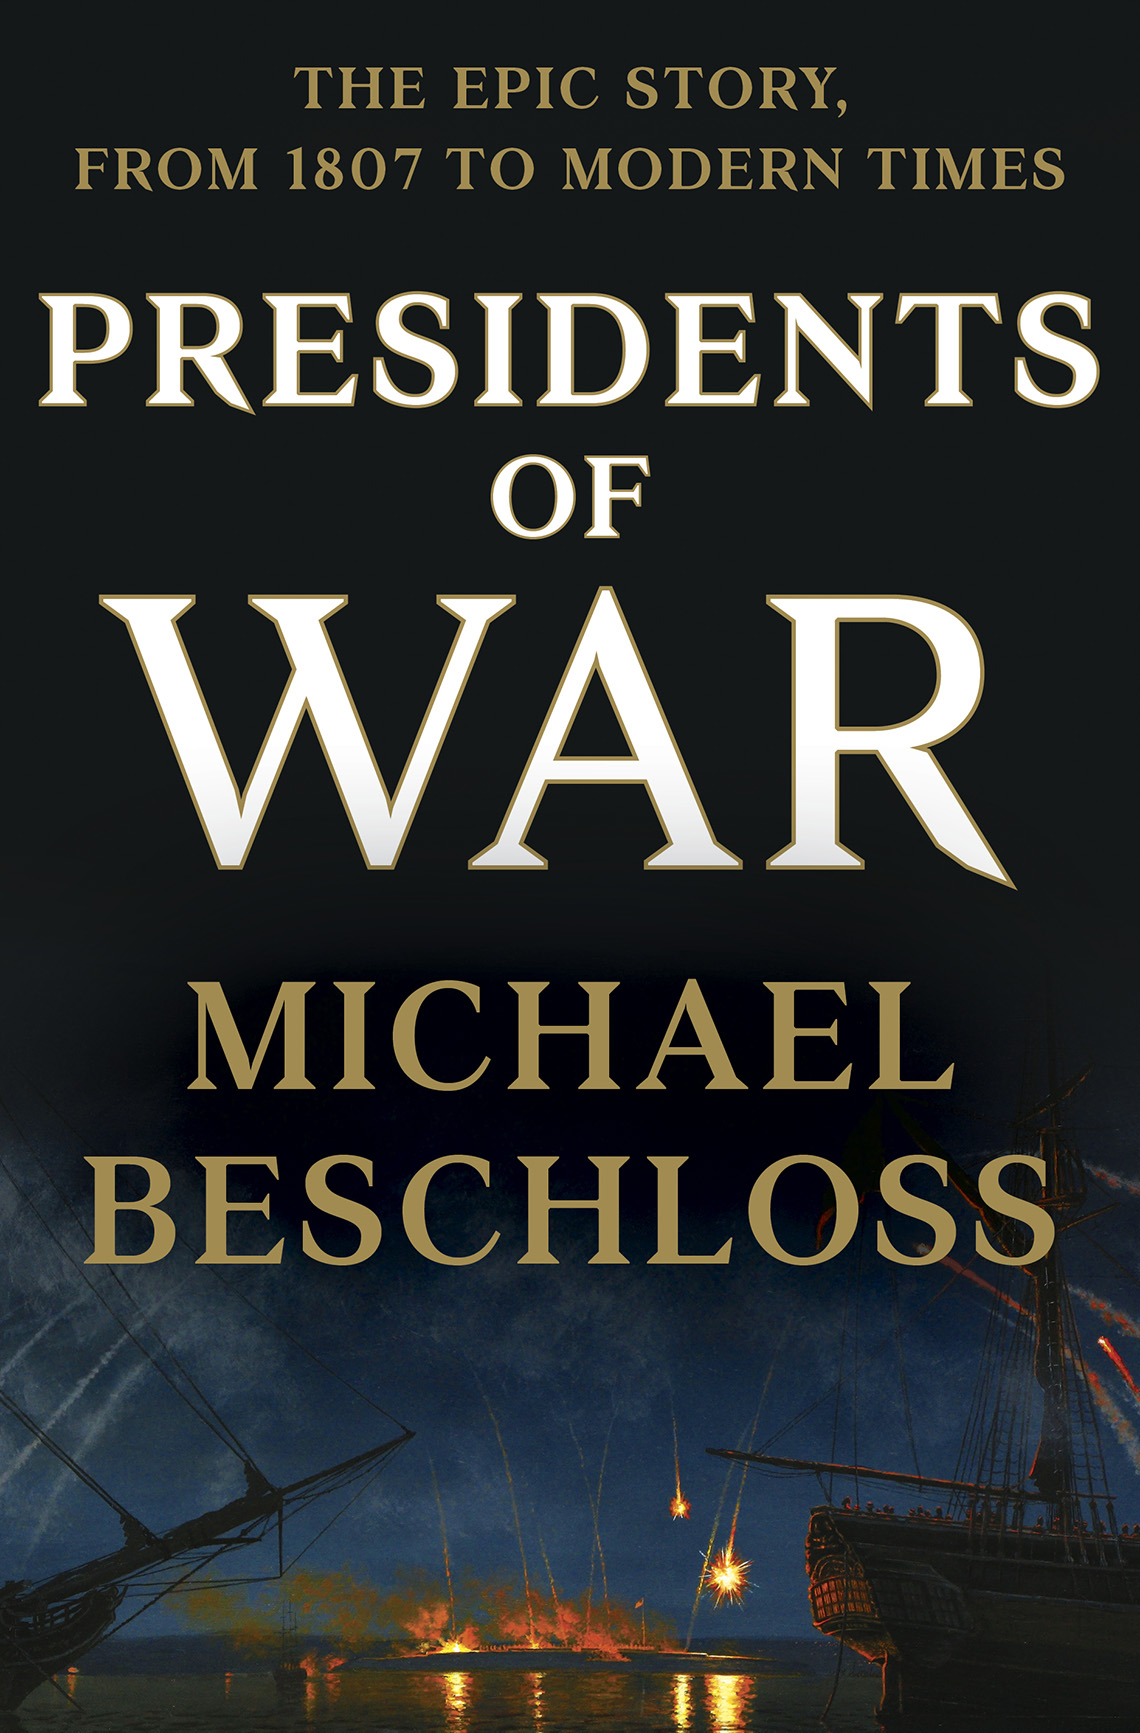 """Book cover, text reads """"The epic story, from 1807 to modern times, Presidents of War, Michael Beschloss"""""""